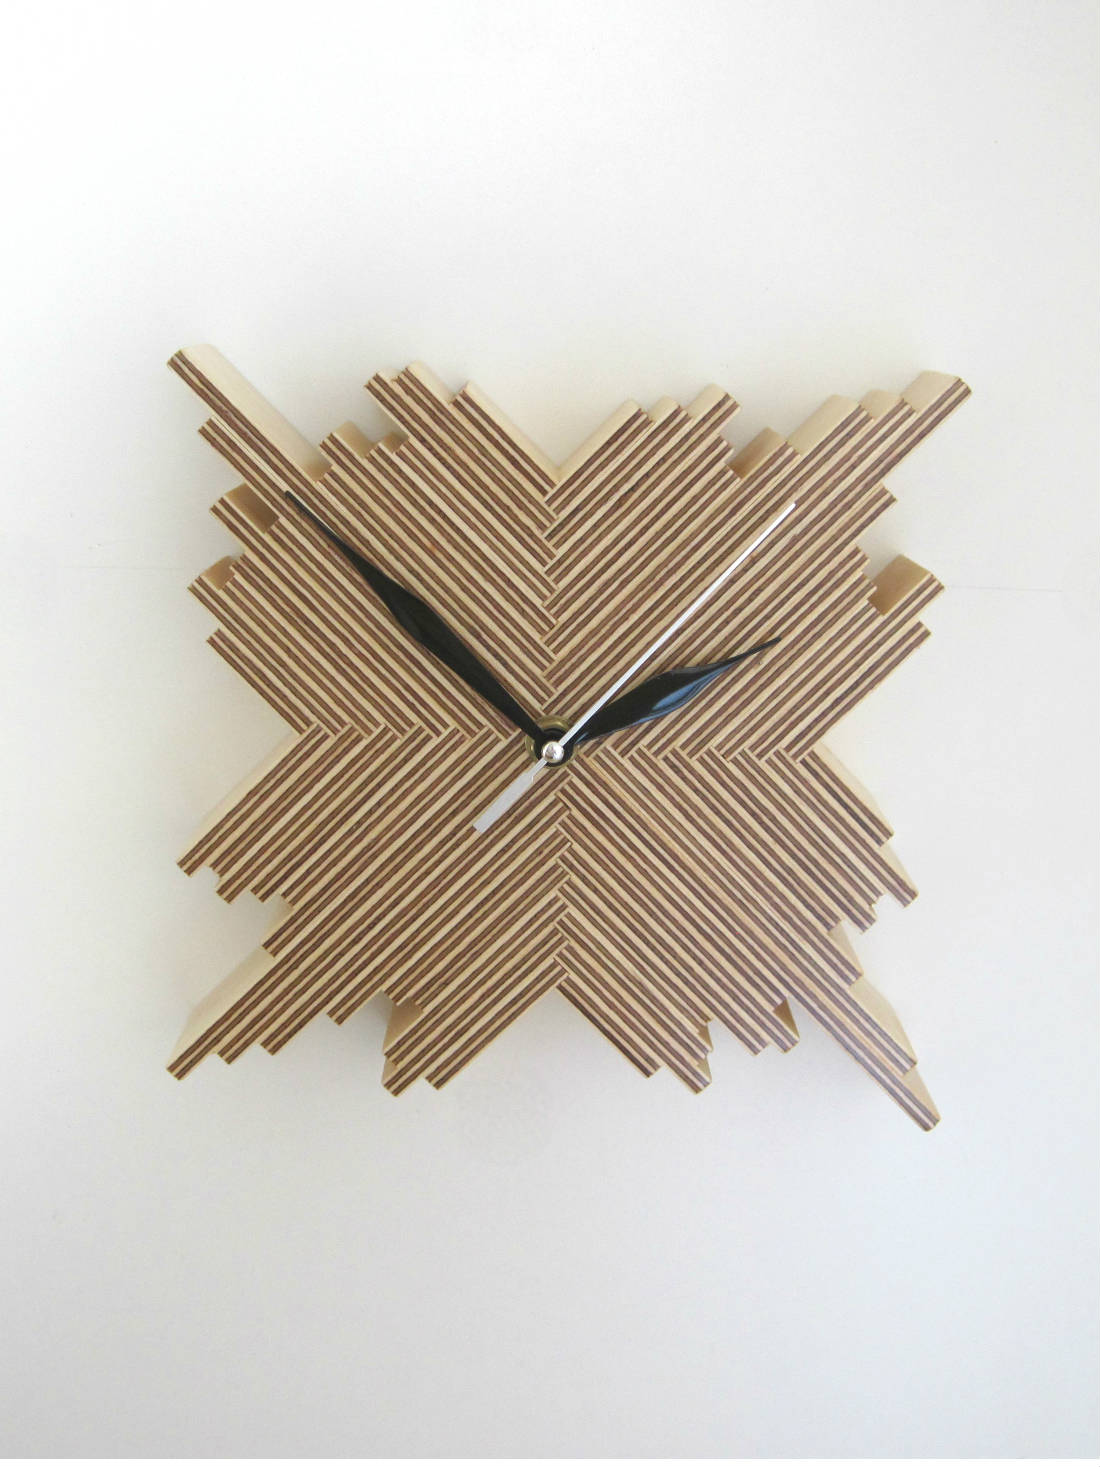 Cristallo Clock by Samuel Ansbacher for brightblueliving.com